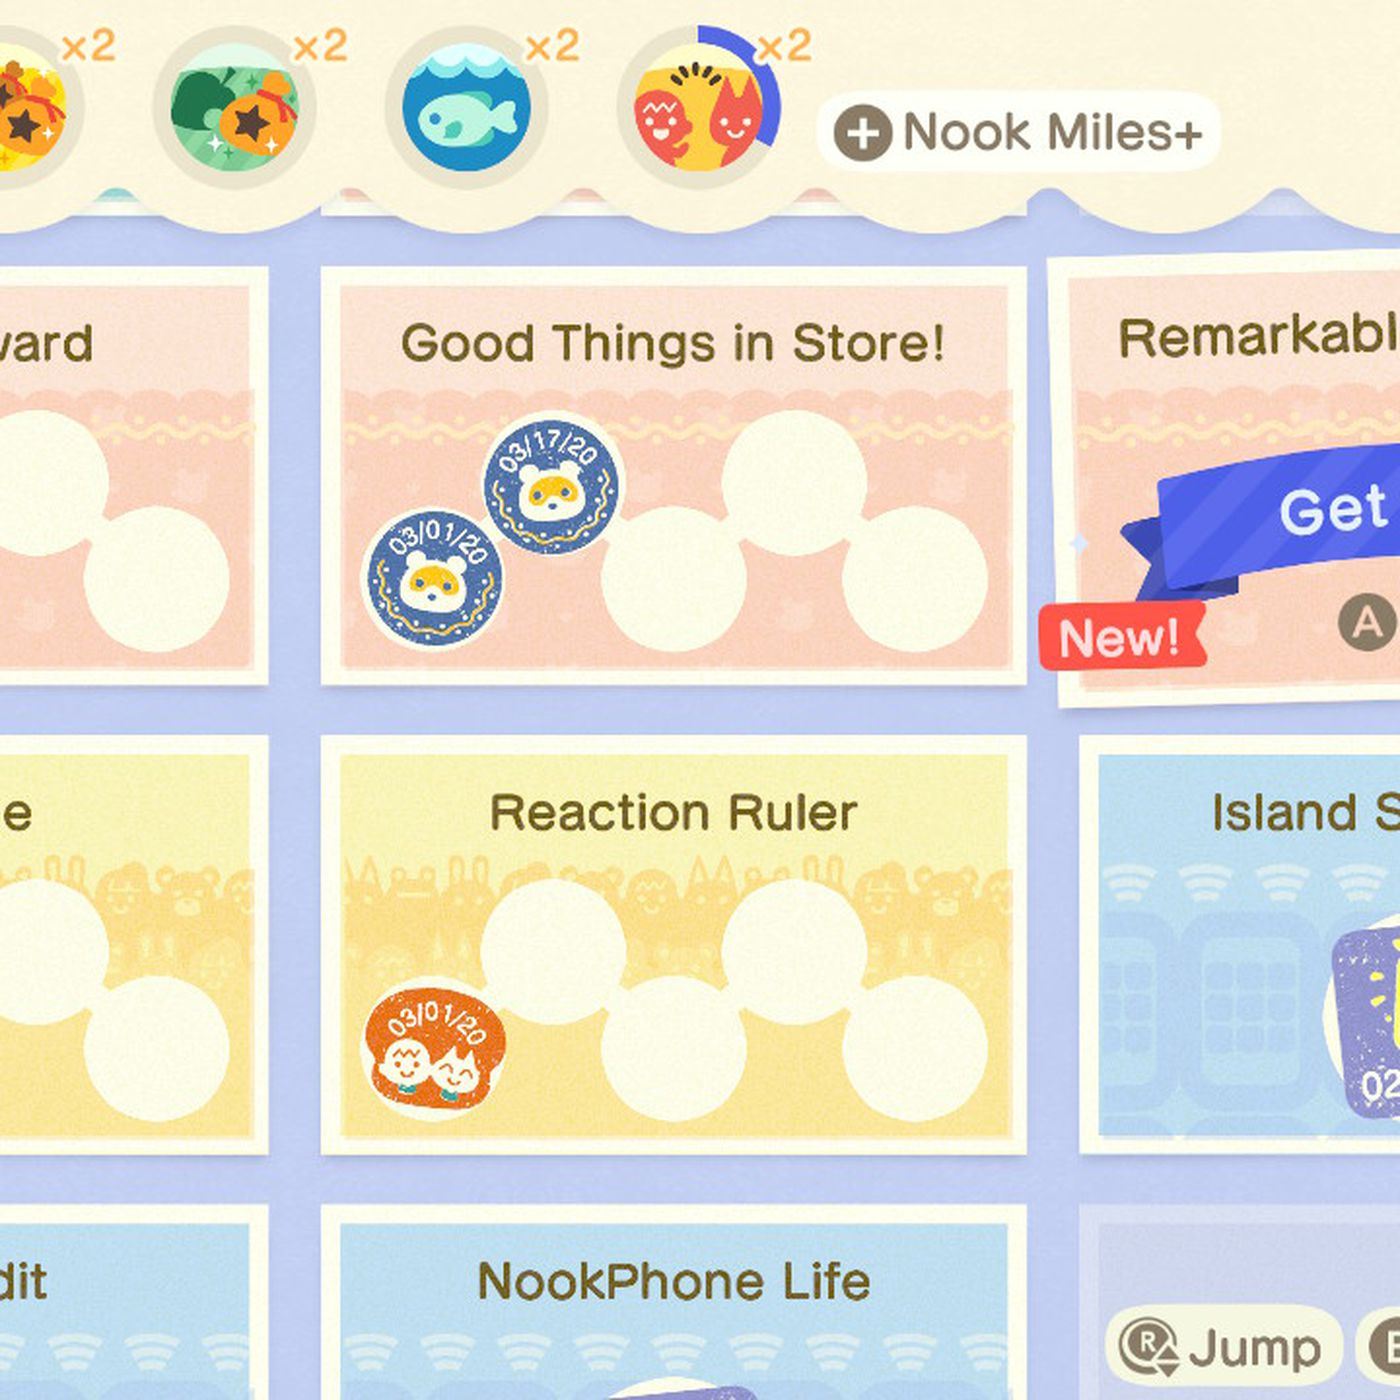 Animal Crossing New Horizons Switch Nook Mileage Rewards List